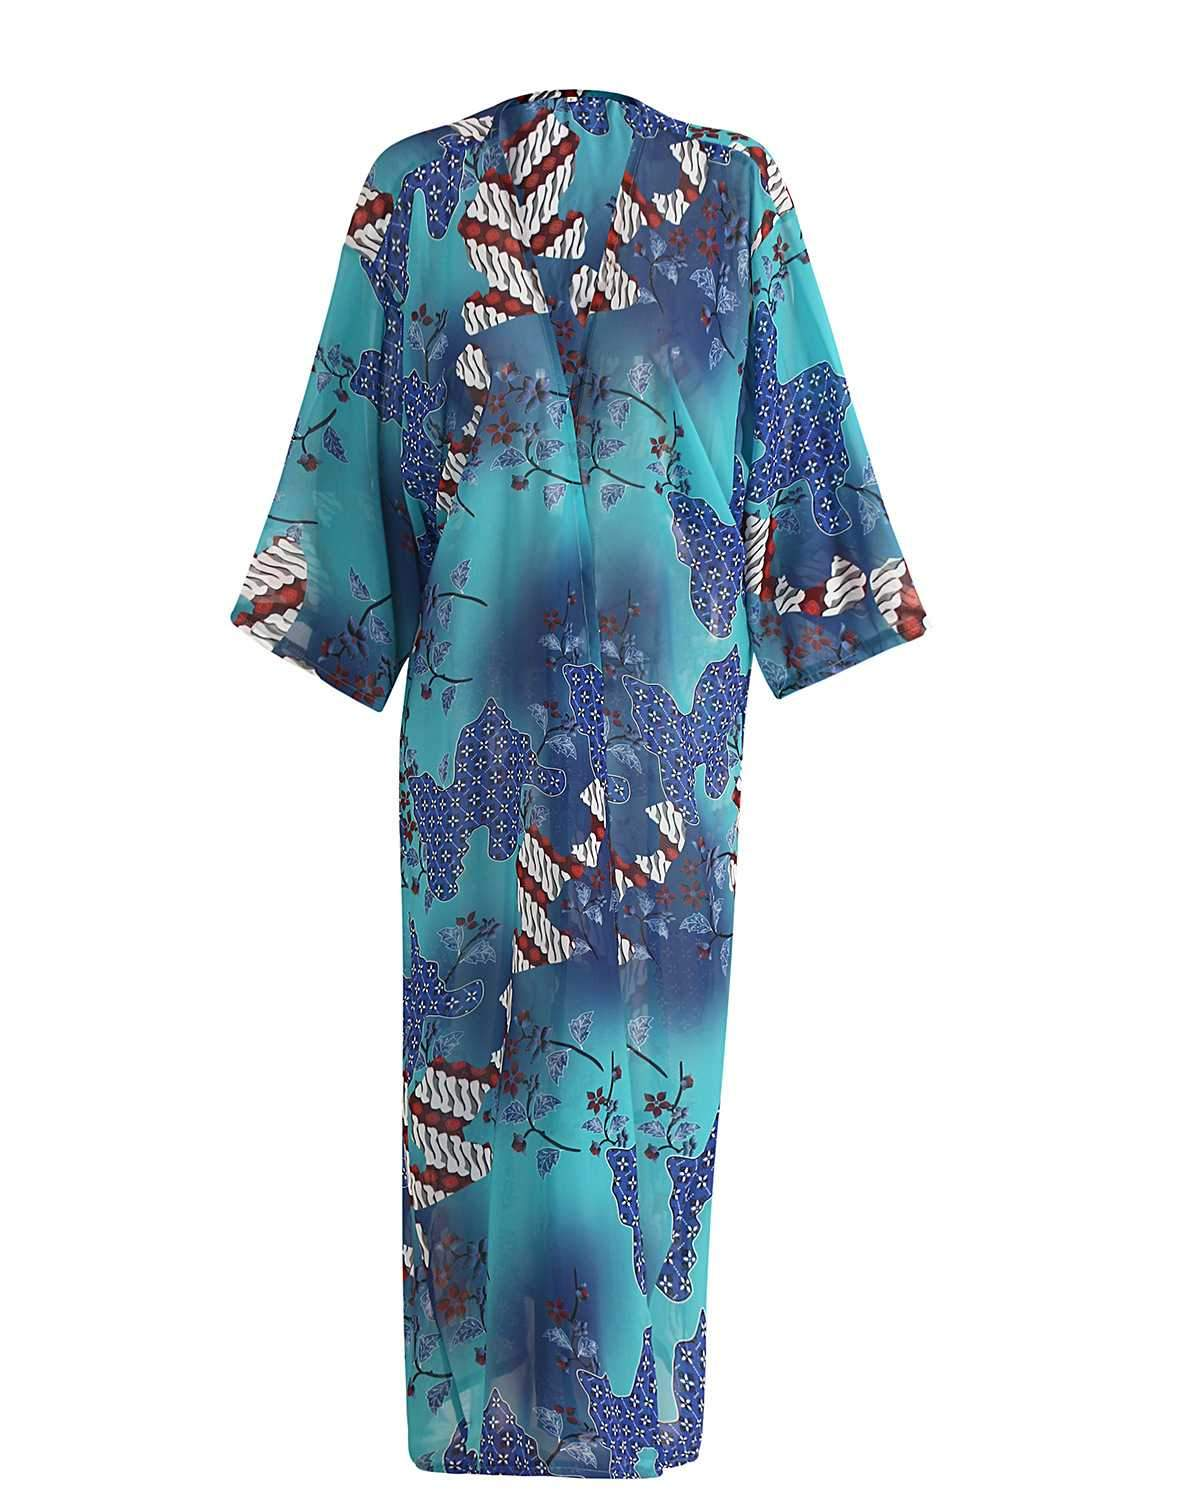 Retro Floral Coverups Dress Beach Wear Kimono